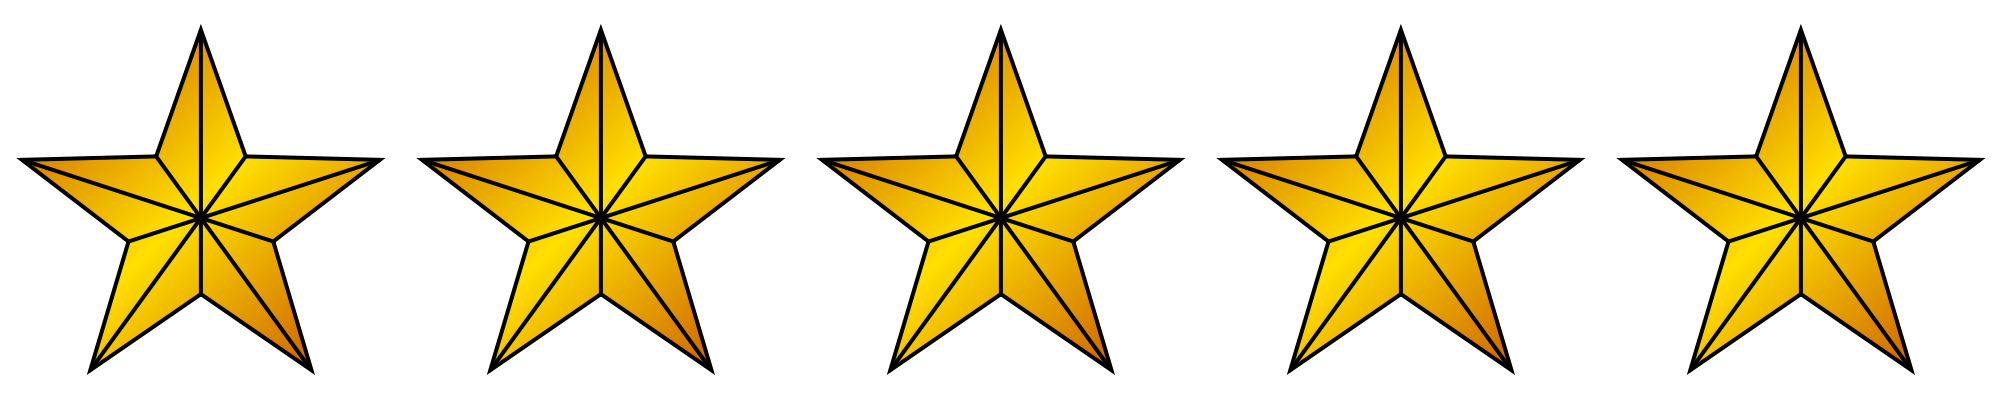 File svg wikimedia commons. 5 gold stars png graphic freeuse stock